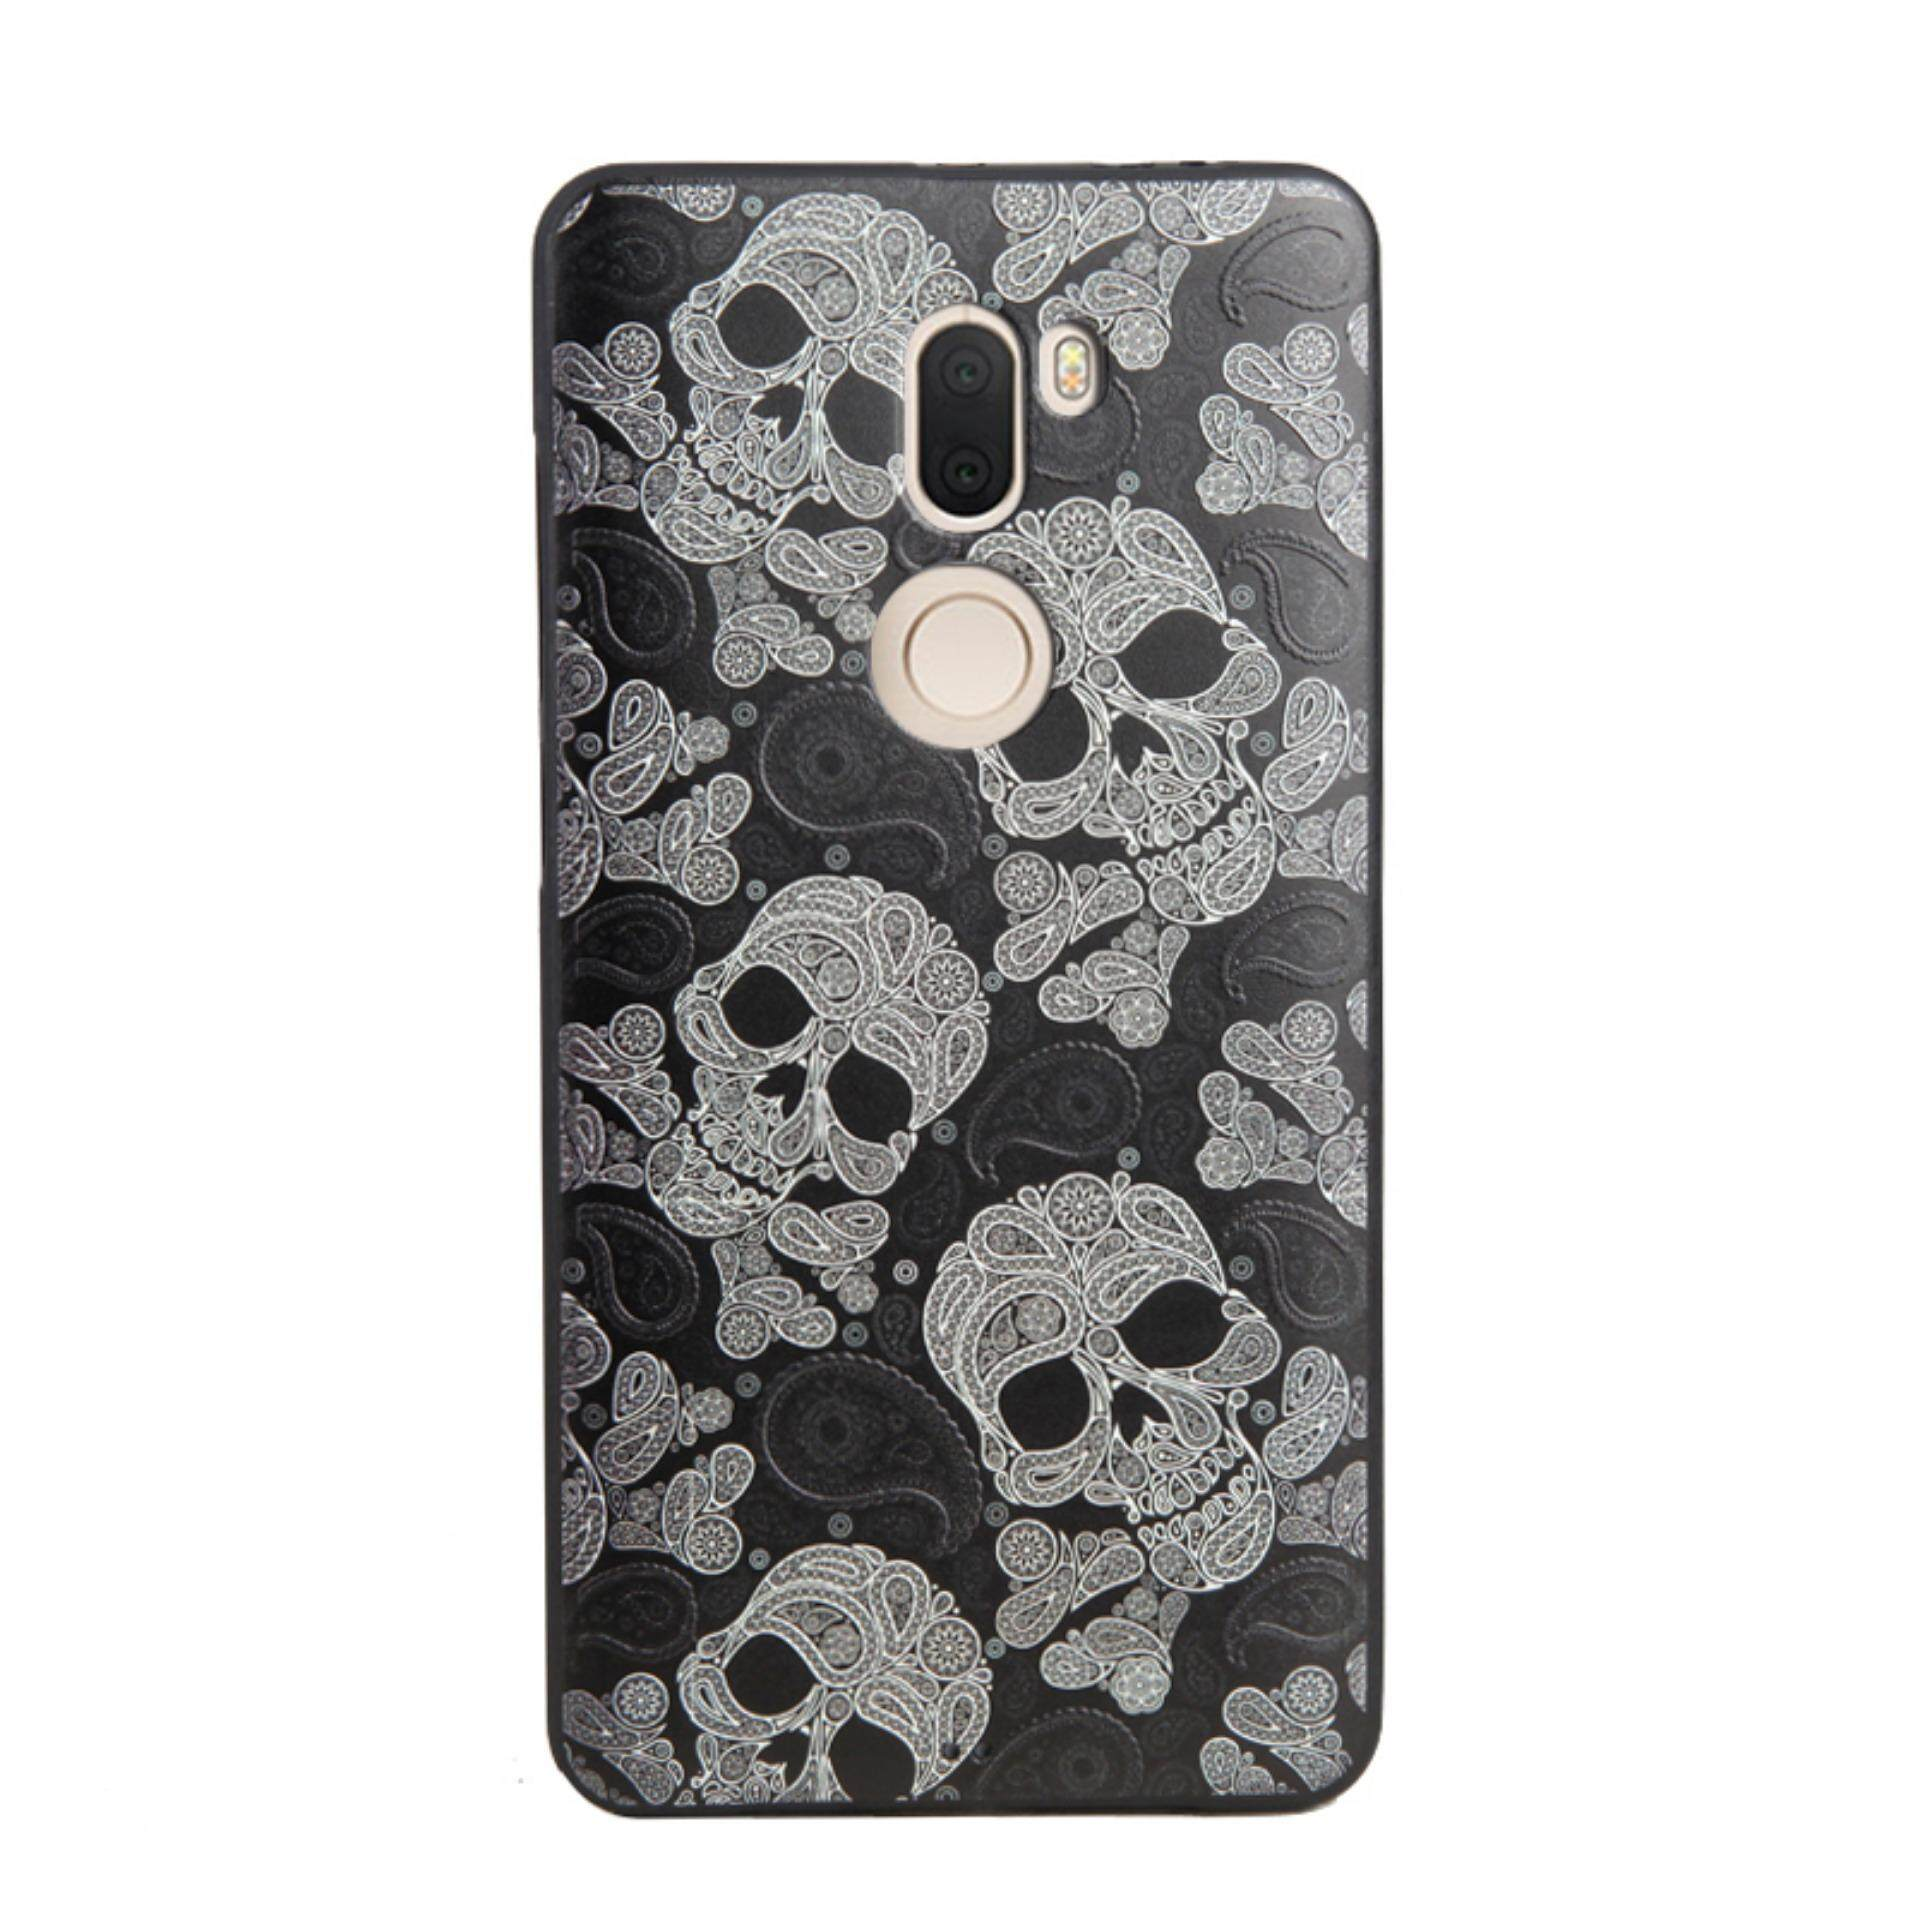 Bogdana for Xiaomi Mi 5s Plus Case Soft TPU 3D Painted Emboss Phone Case (Black